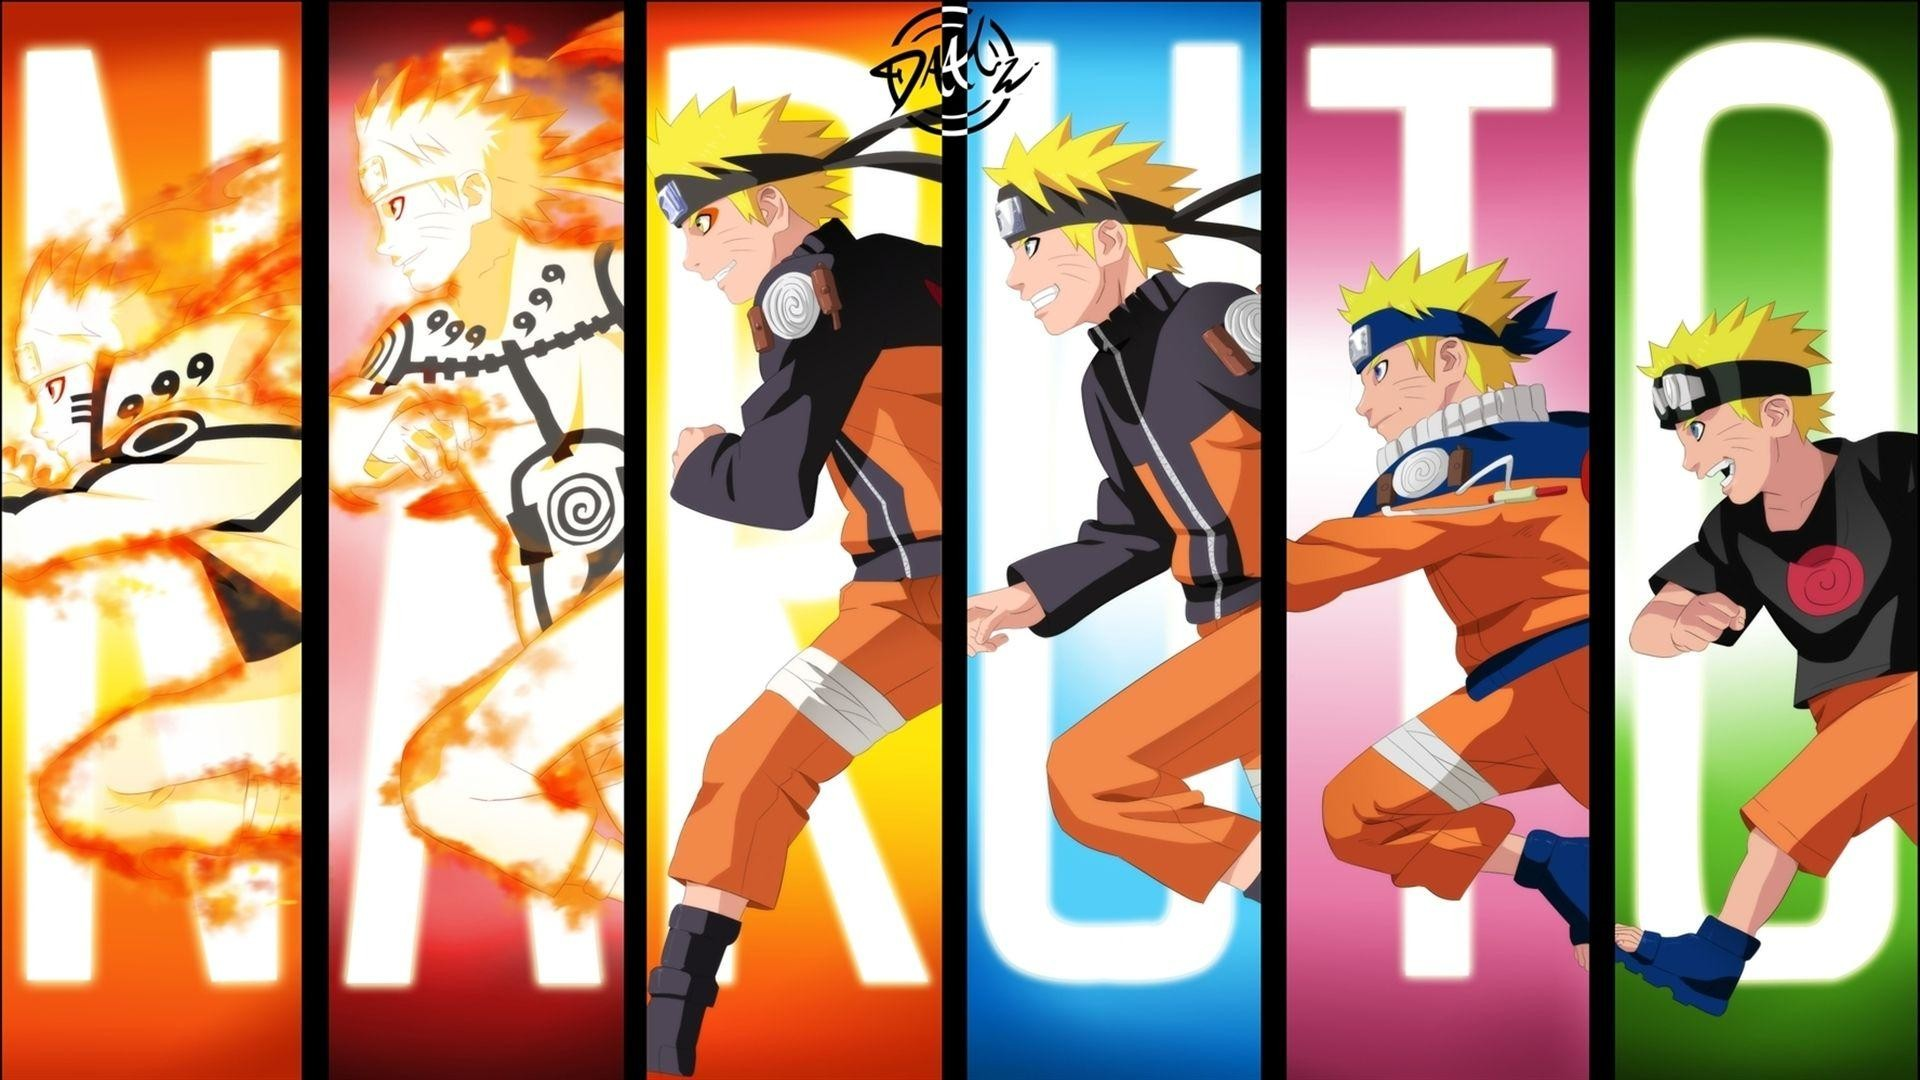 979523 vertical cool naruto wallpapers hd 1920x1080 for iphone 6